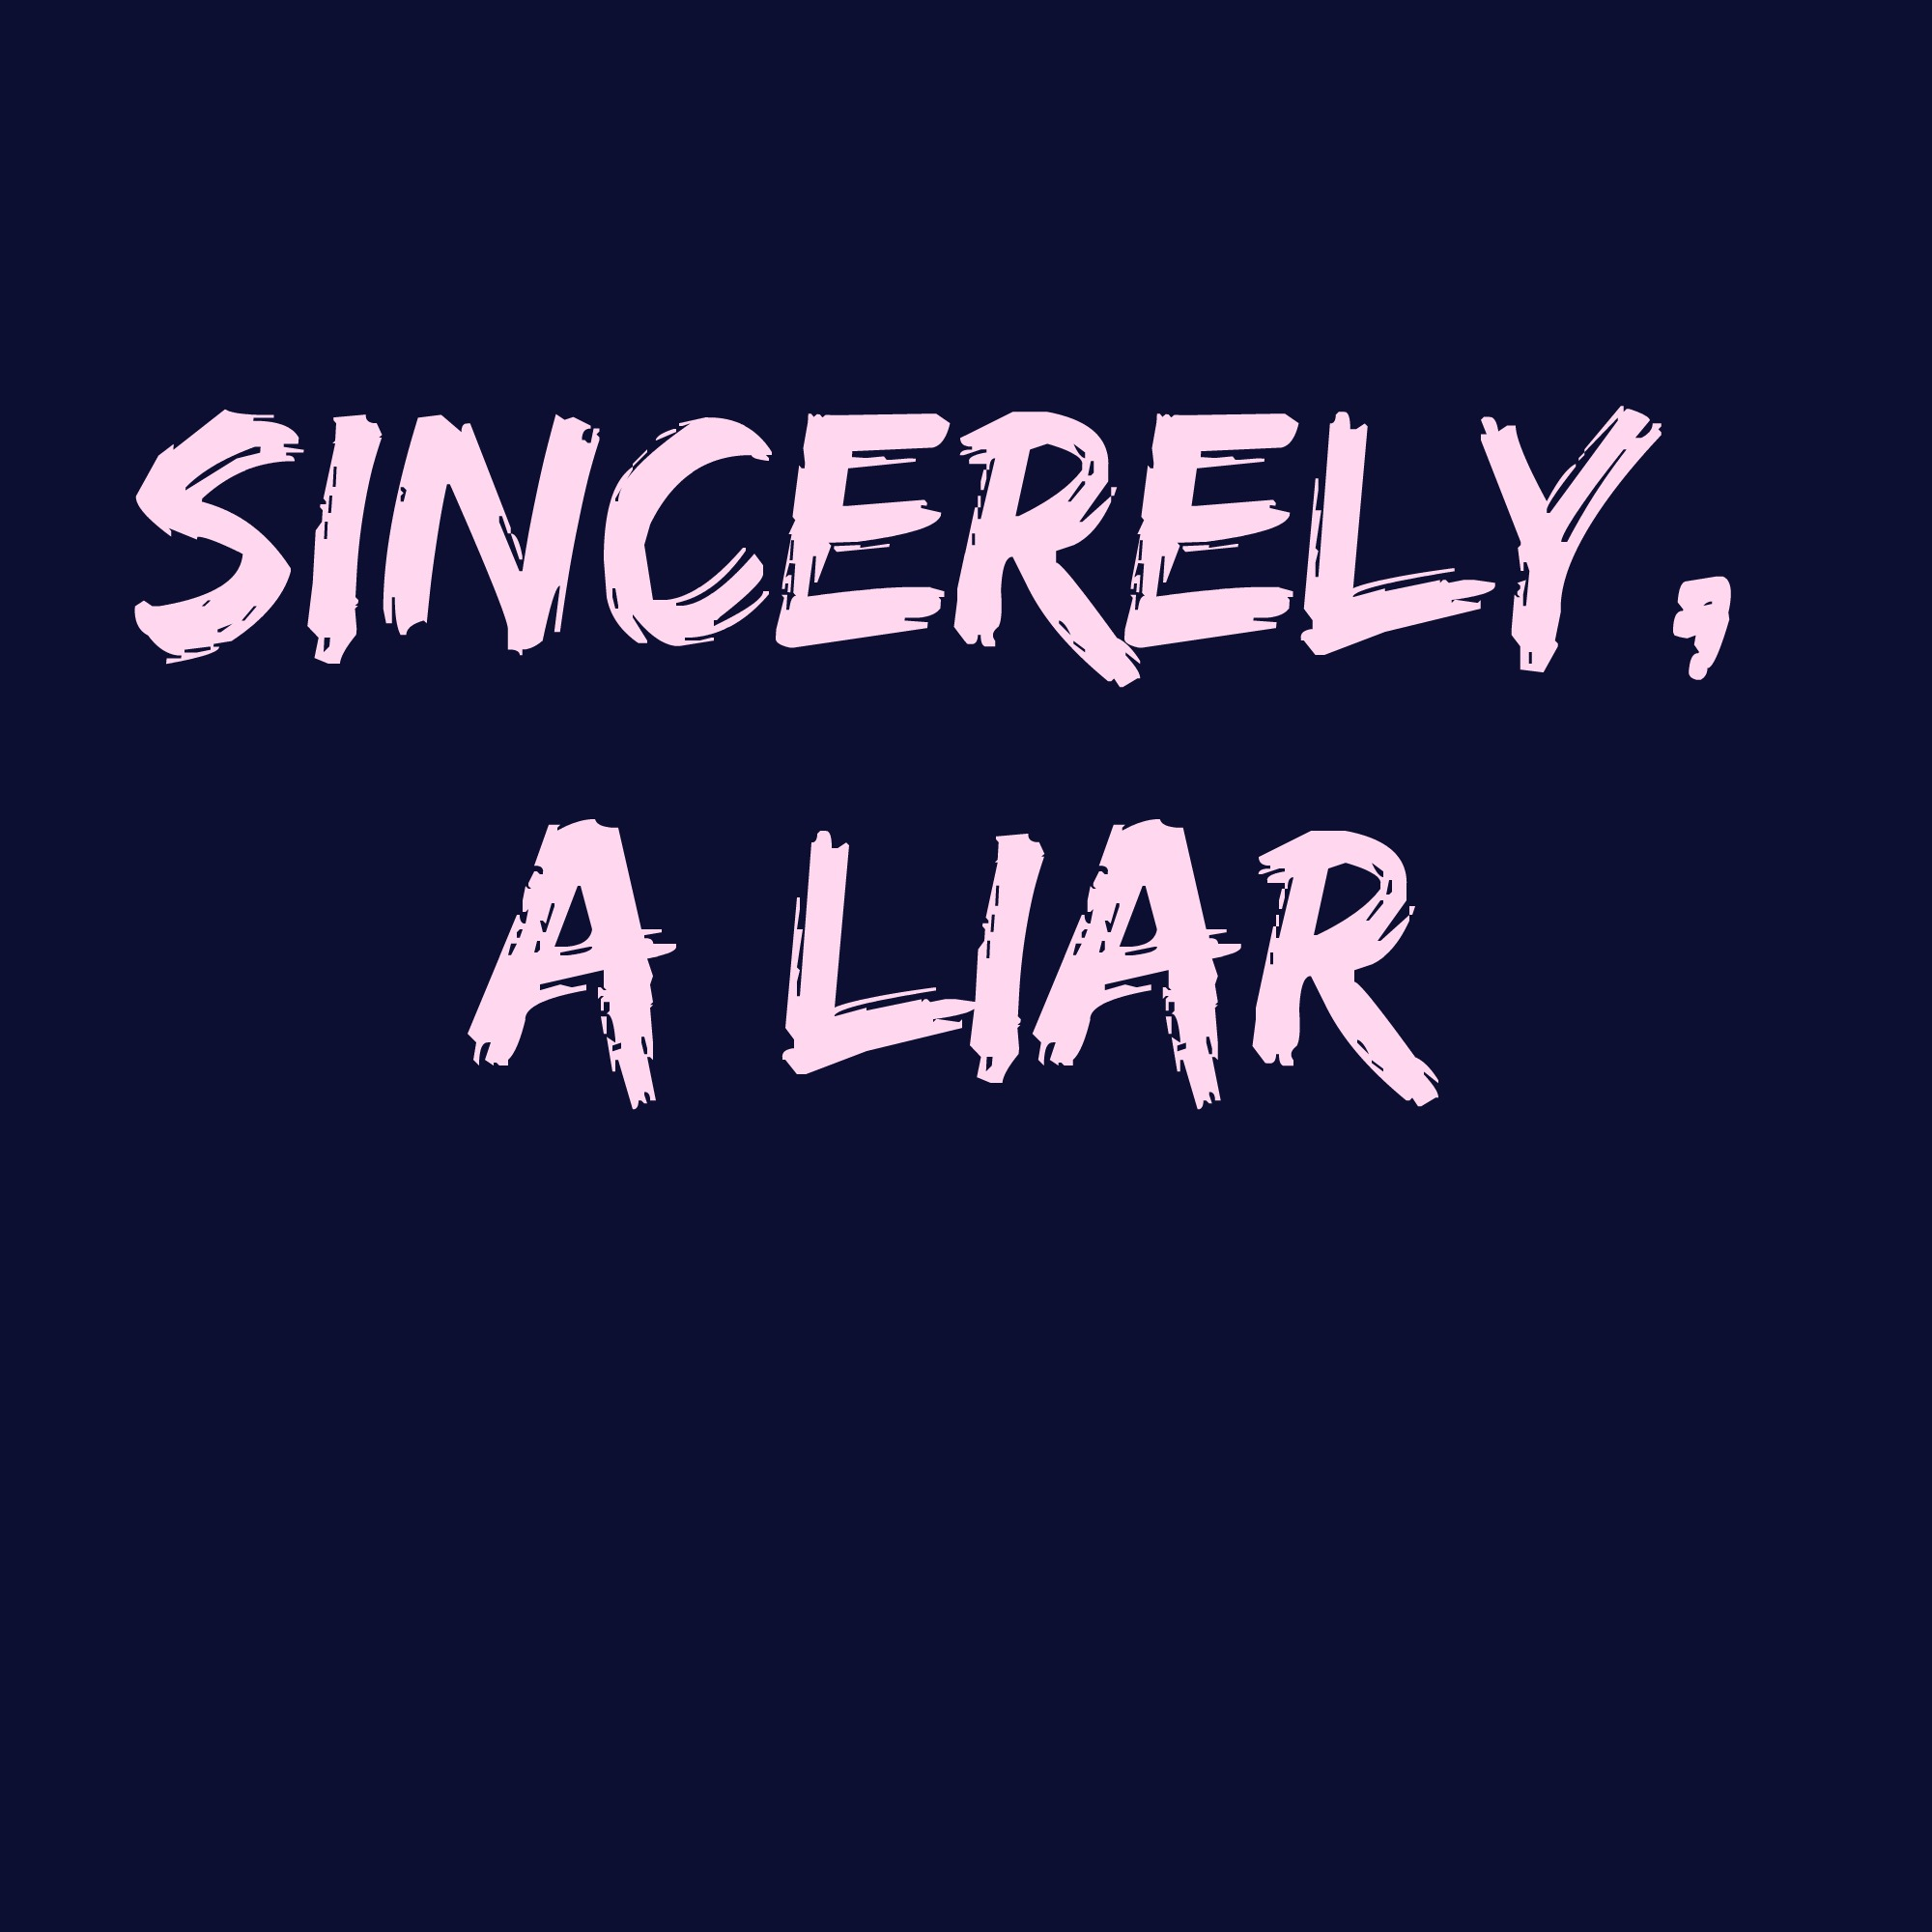 liar liar essay The liar (poem) study guide contains a biography of imamu amiri baraka, literature essays, quiz questions, major themes, characters, and a full summary and analysis.